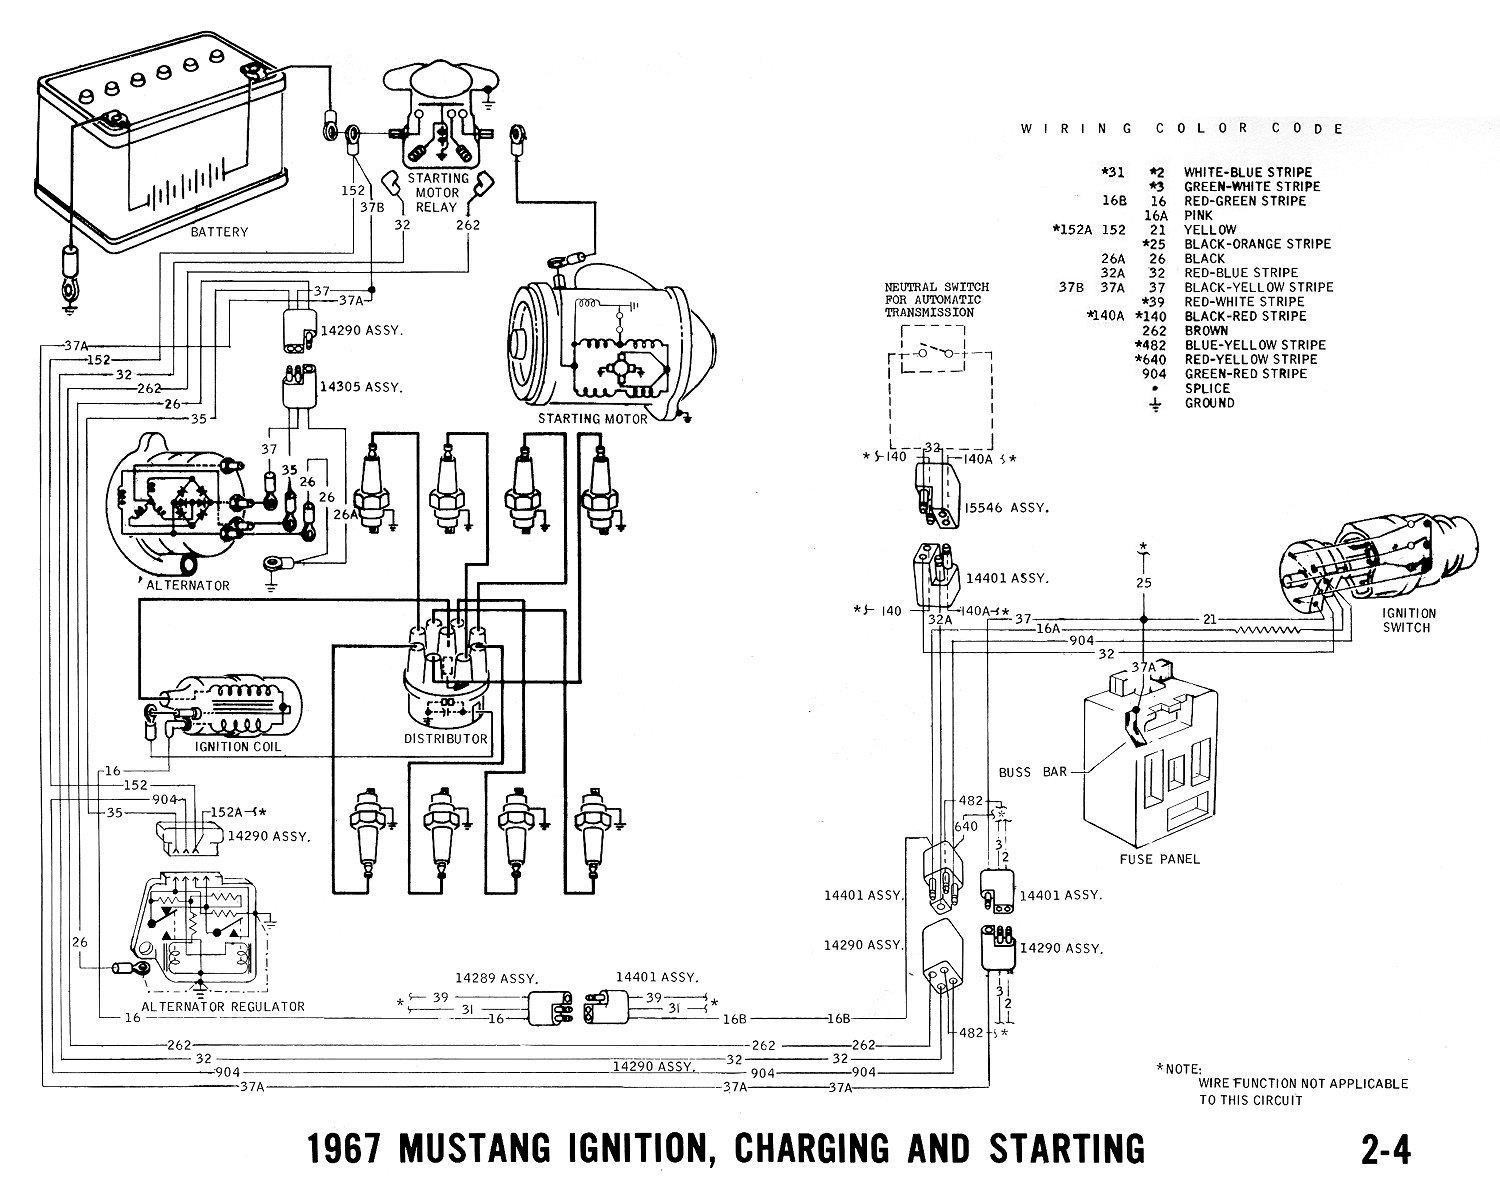 alternator voltage regulator wiring diagram furthermore ford mustang dodge voltage regulator wiring 1967 mustang alternator wiring diagram further 1969 mustang rh valmedwire co 1966 ford f100 alternator wiring diagram ford 302 alternator wiring diagram